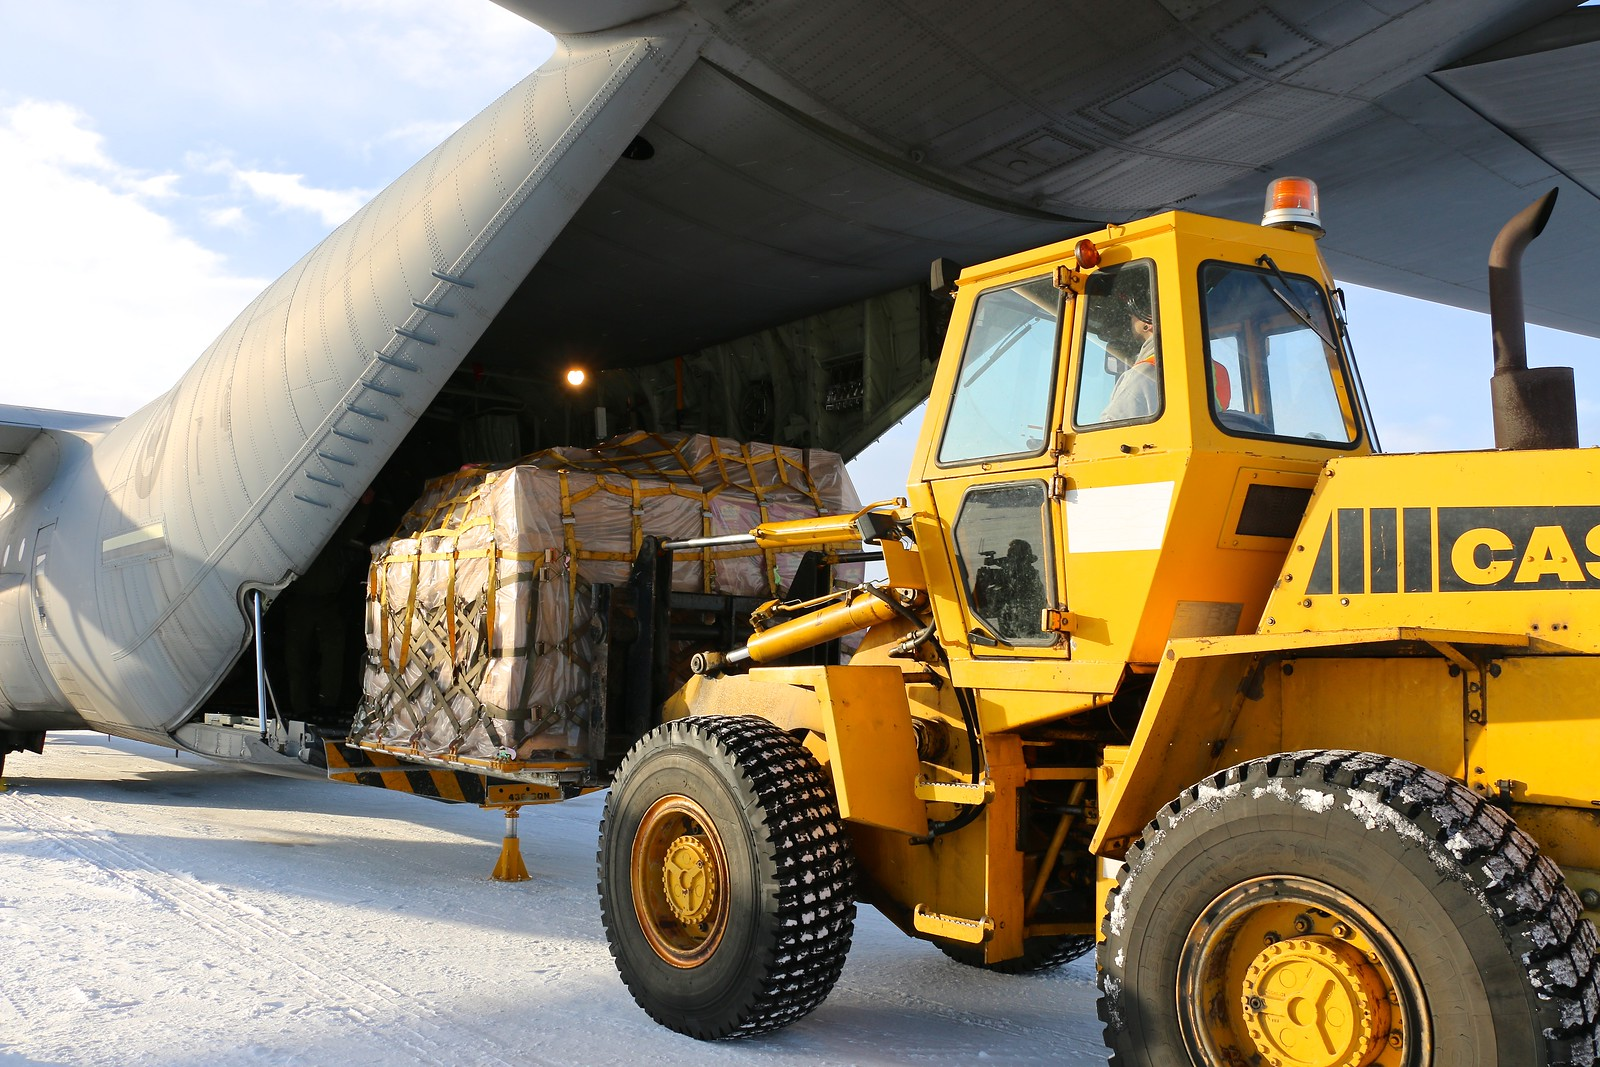 5 Wing Goose Bay personnel unload pallets of toys from the CC-130J Hercules. PHOTO: Makala Chapman